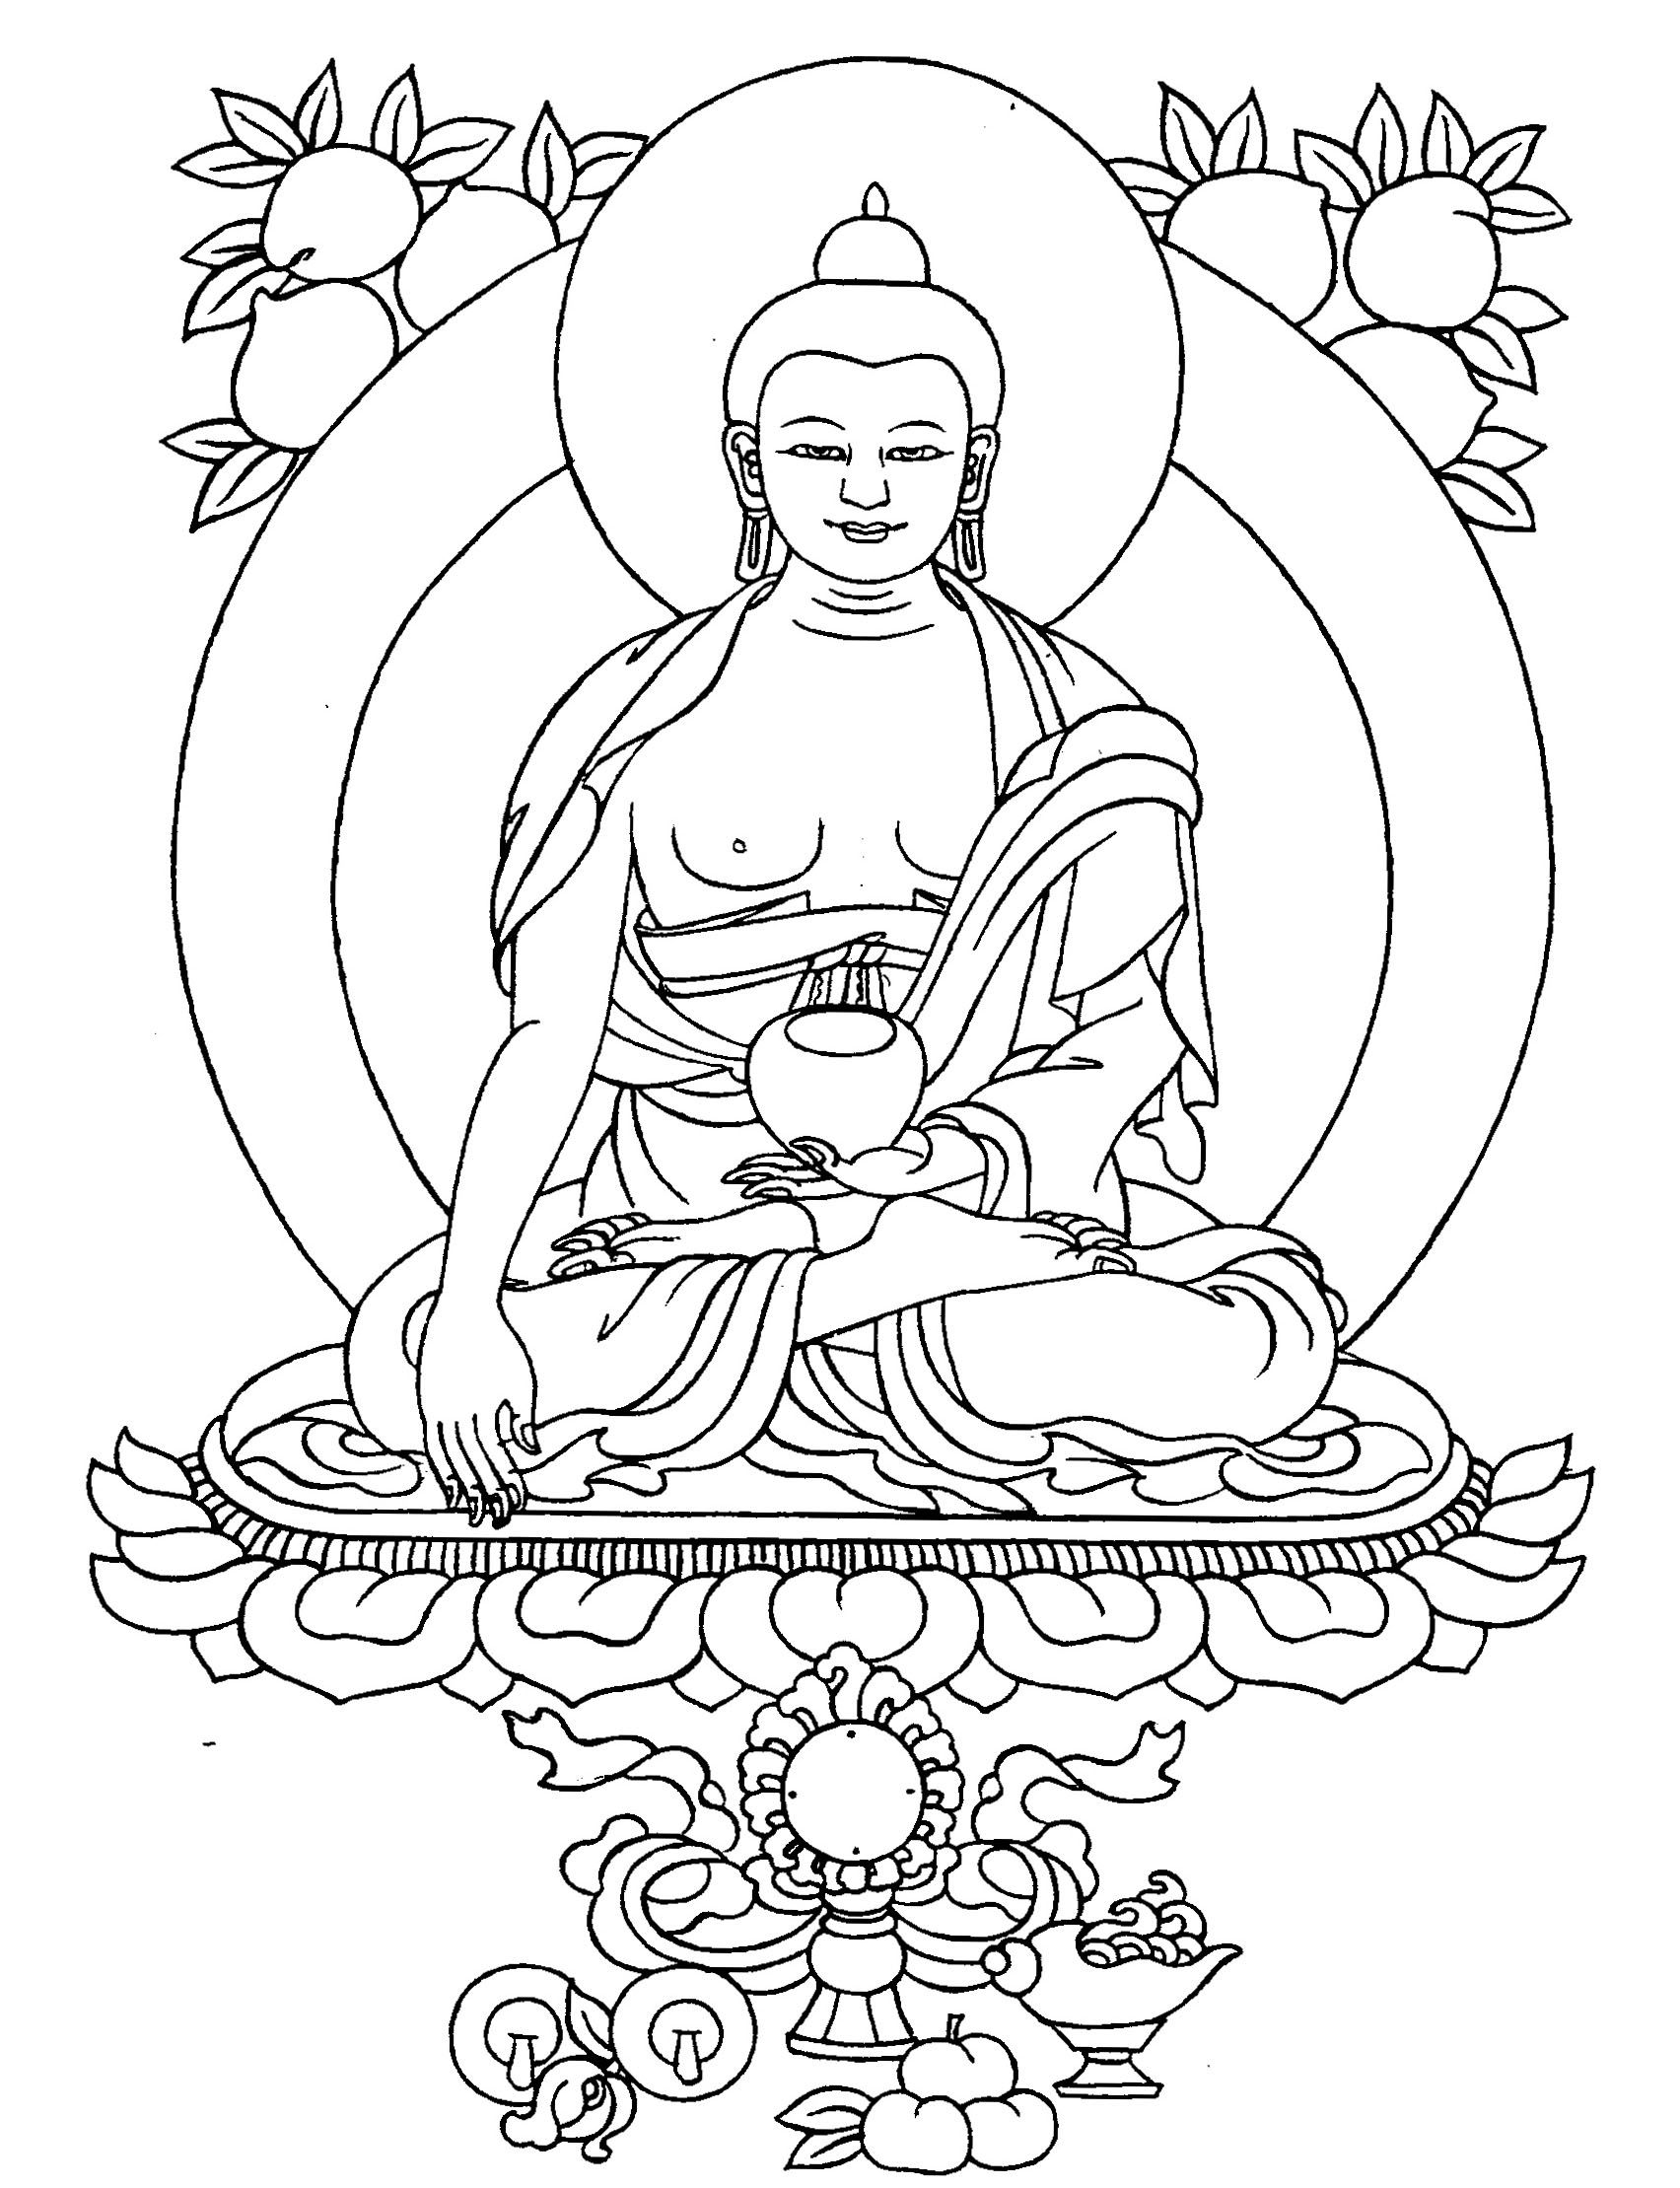 buddha coloring pages Pin by Stephanie Zinggeler RN on Nursing: P/MH, Art Therapy  buddha coloring pages